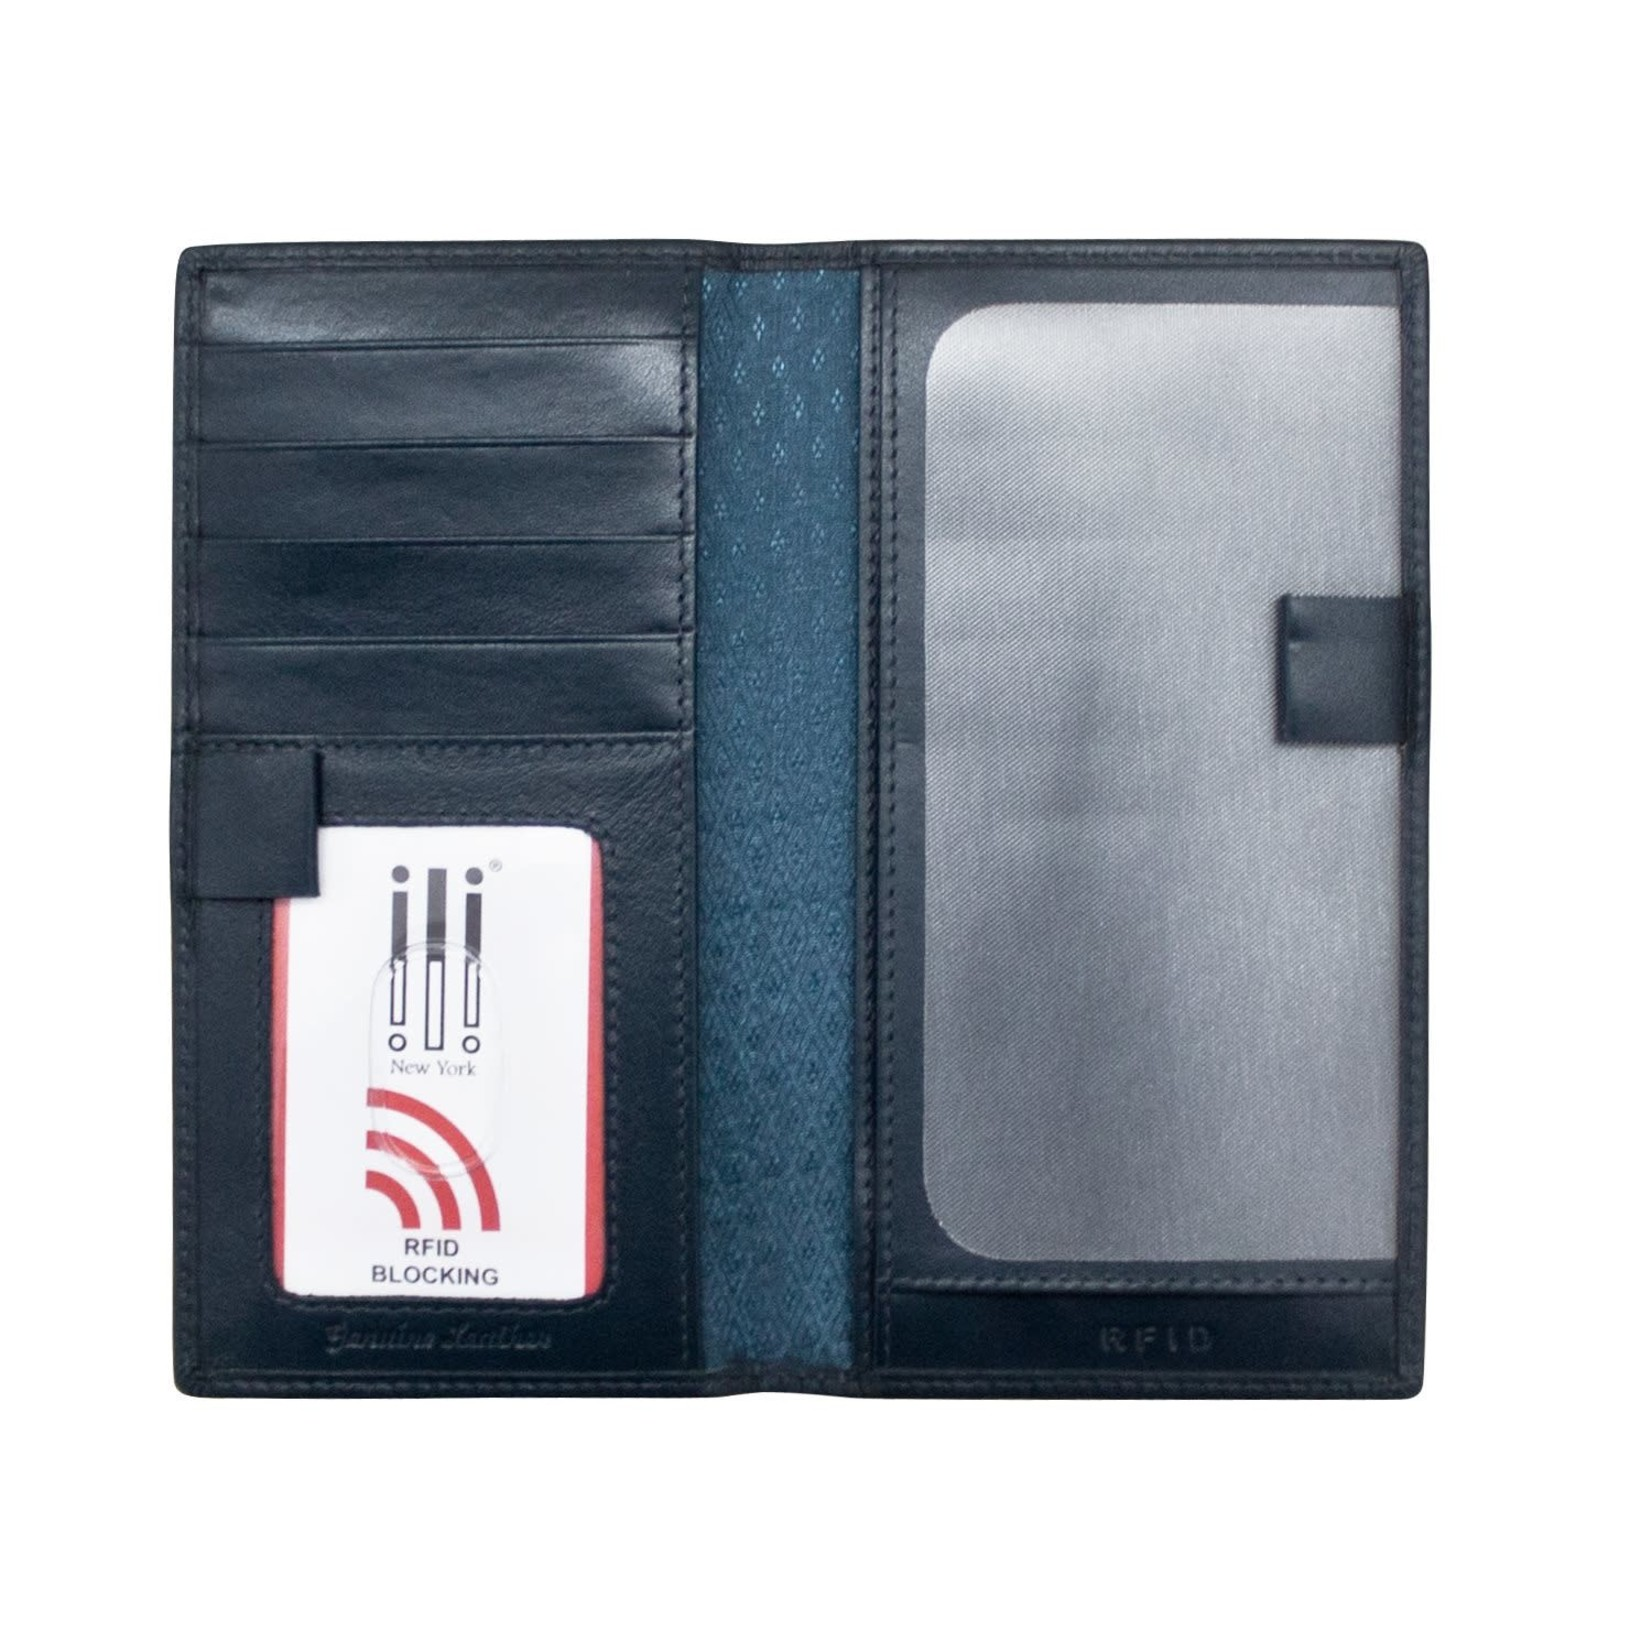 Leather Handbags and Accessories 7406 Navy - RFID Checkbook Cover